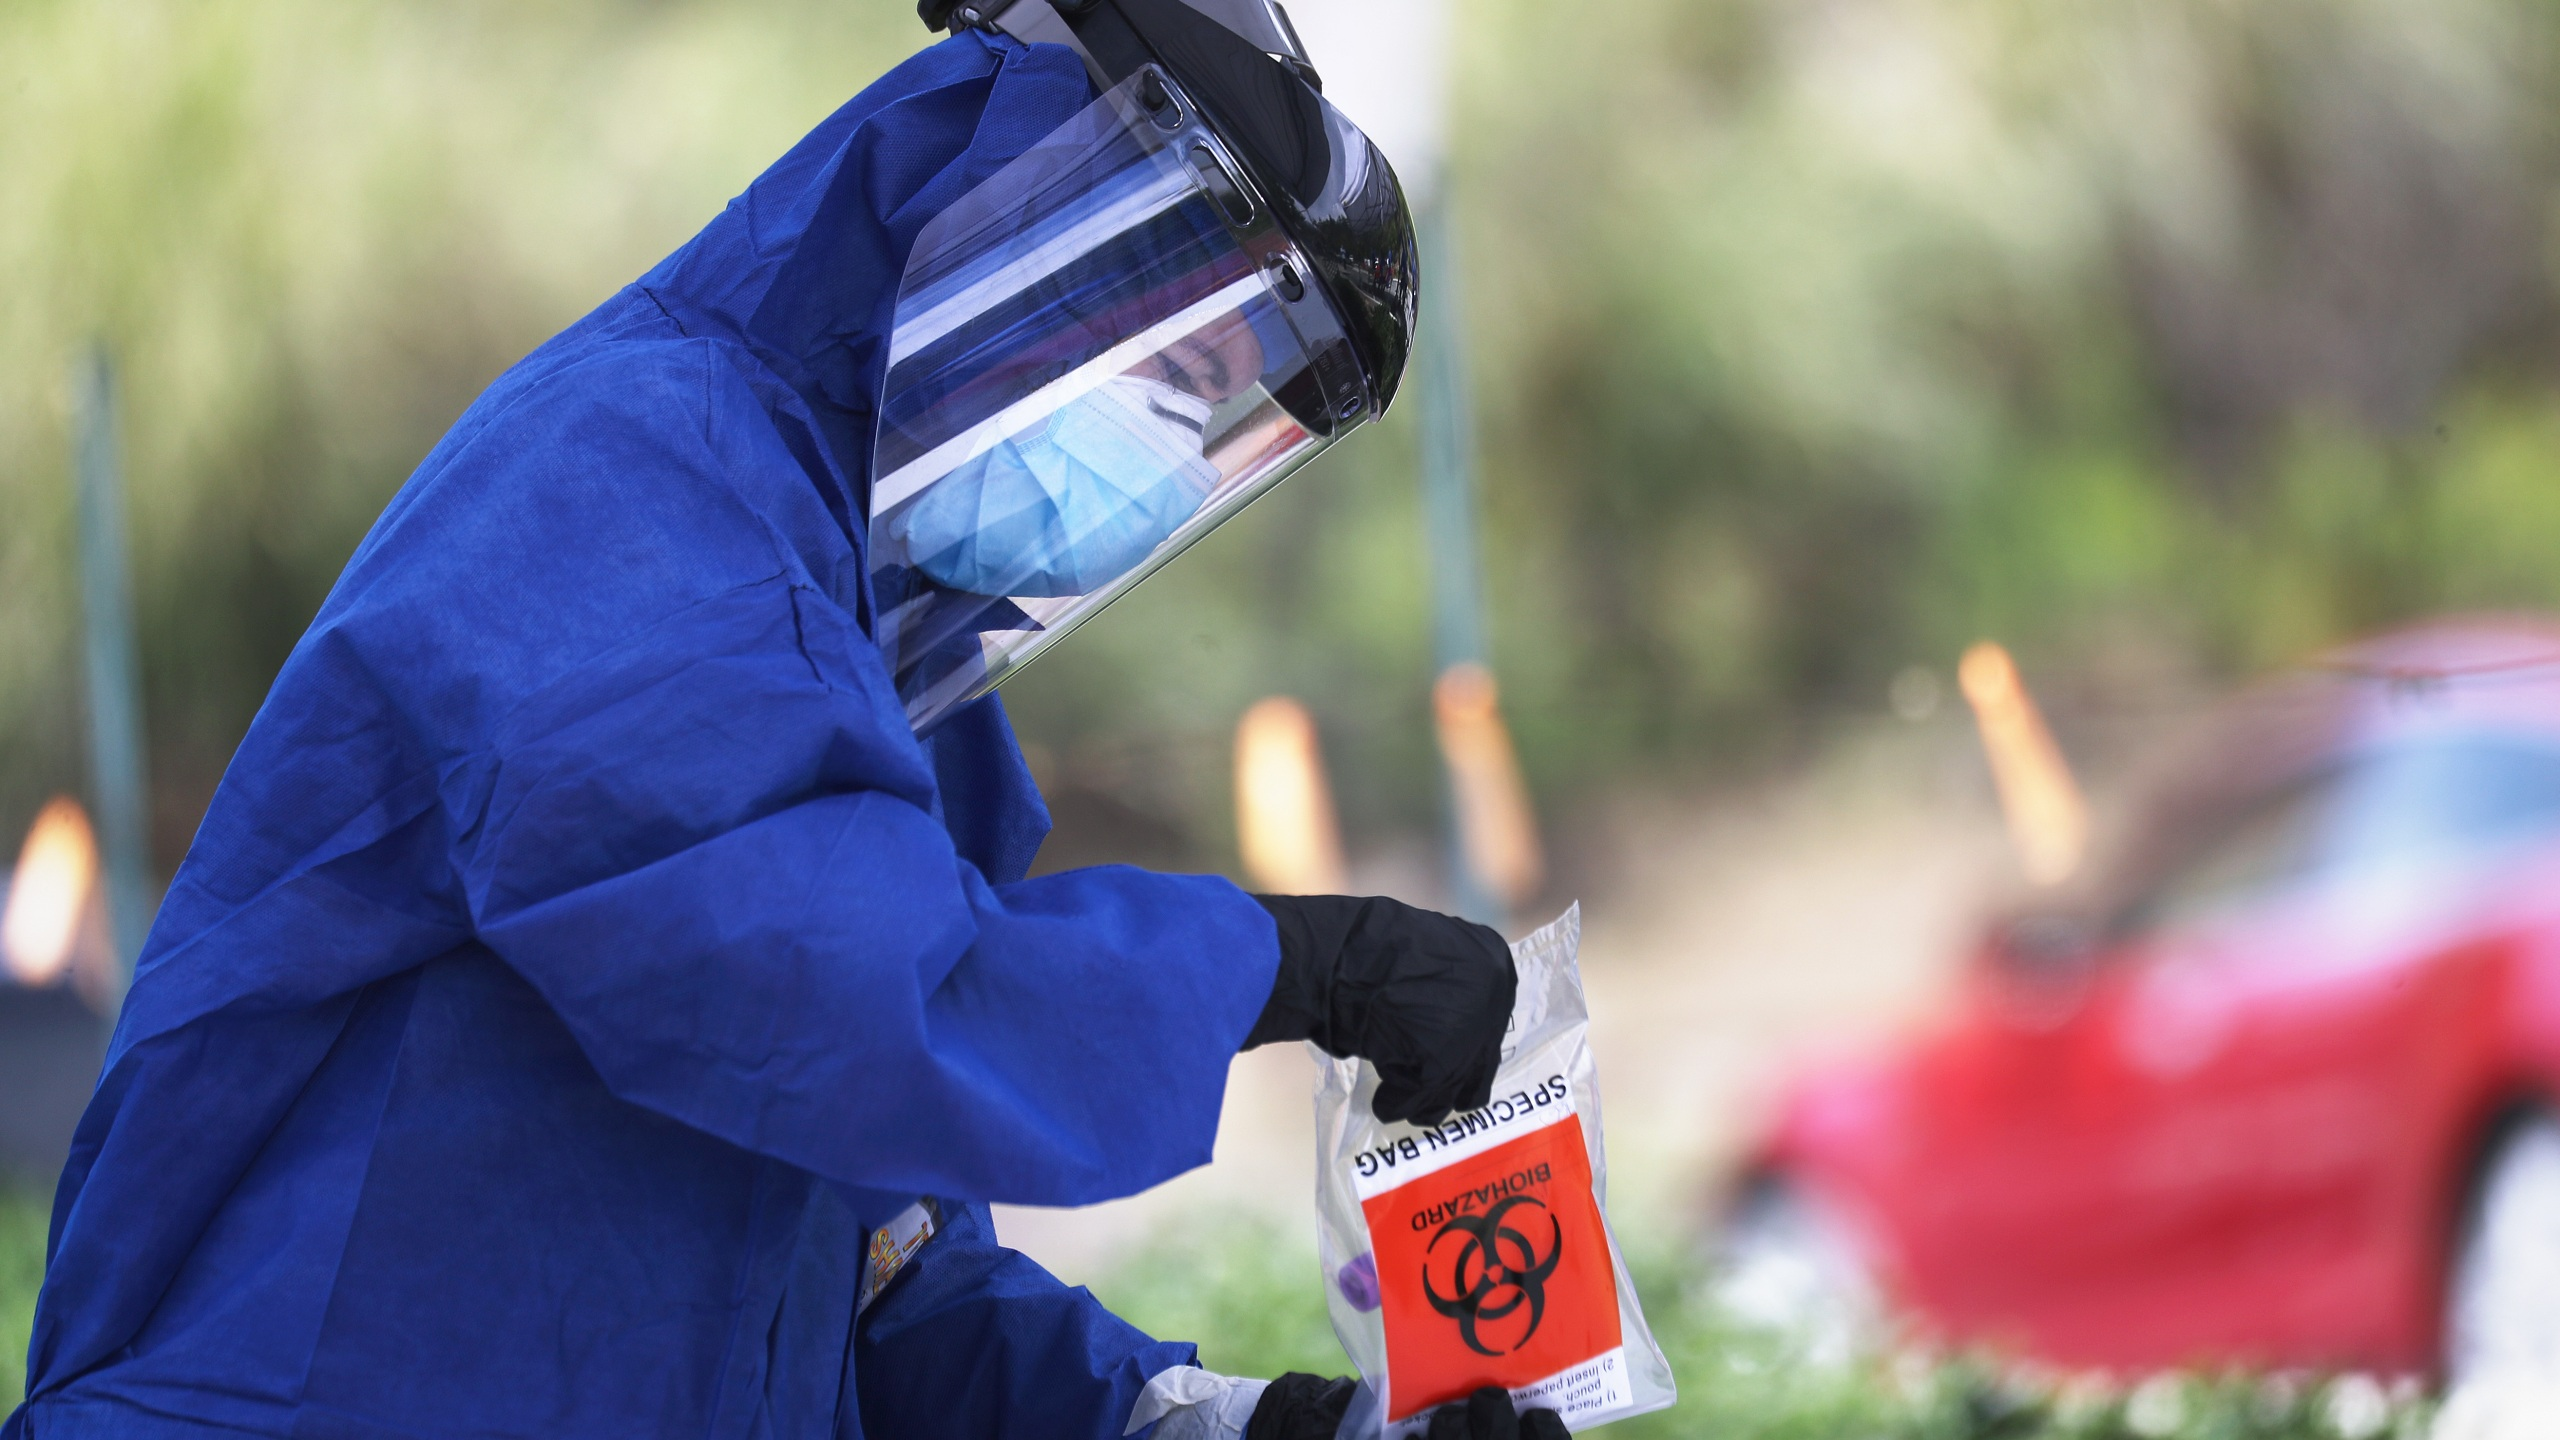 A volunteer holds a specimen bag at a drive-through coronavirus testing site outside Malibu City Hall on April 8, 2020. (Mario Tama/Getty Images)